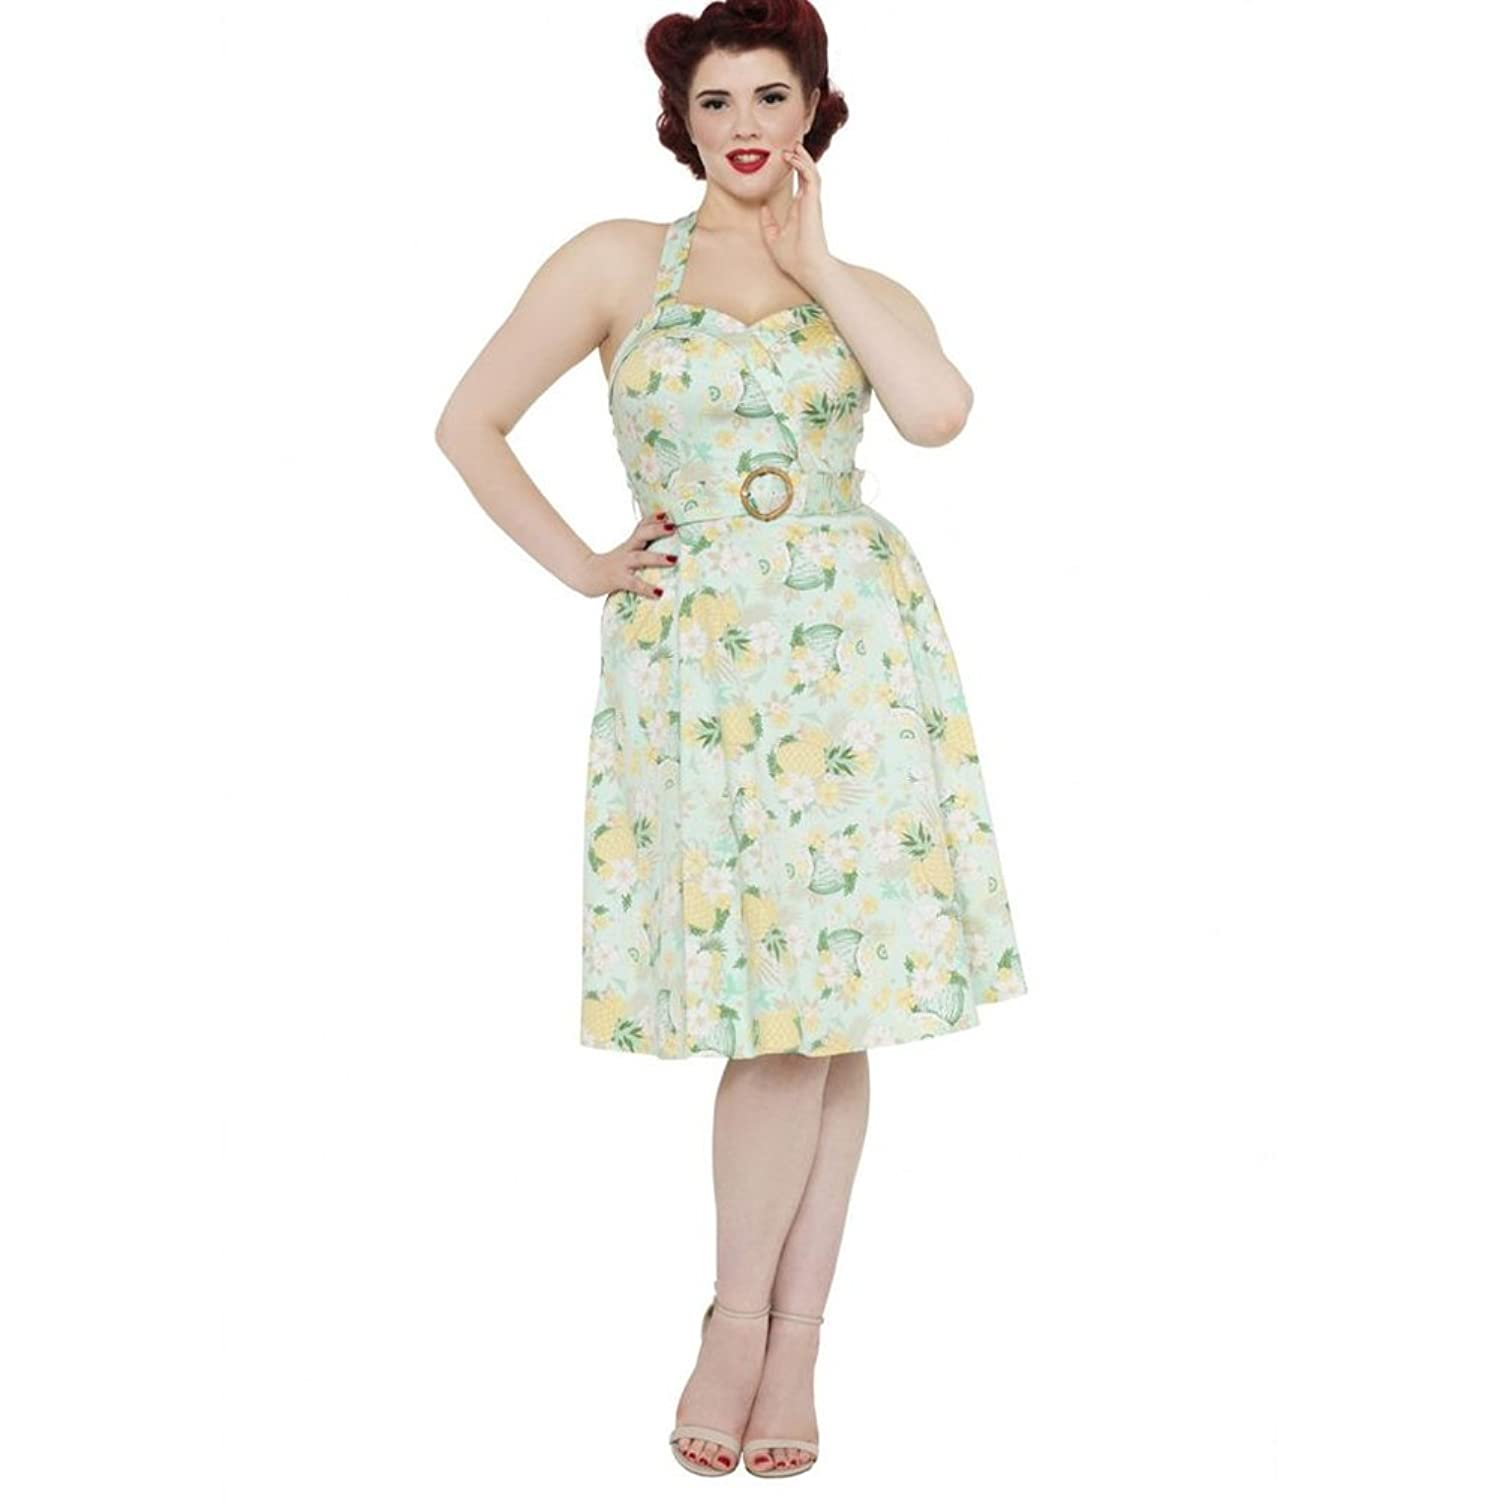 500 Vintage Style Dresses for Sale | Vintage Inspired Dresses Voodoo Vixen Womens Layla Tropical Dream Flare Dress Green $75.70 AT vintagedancer.com